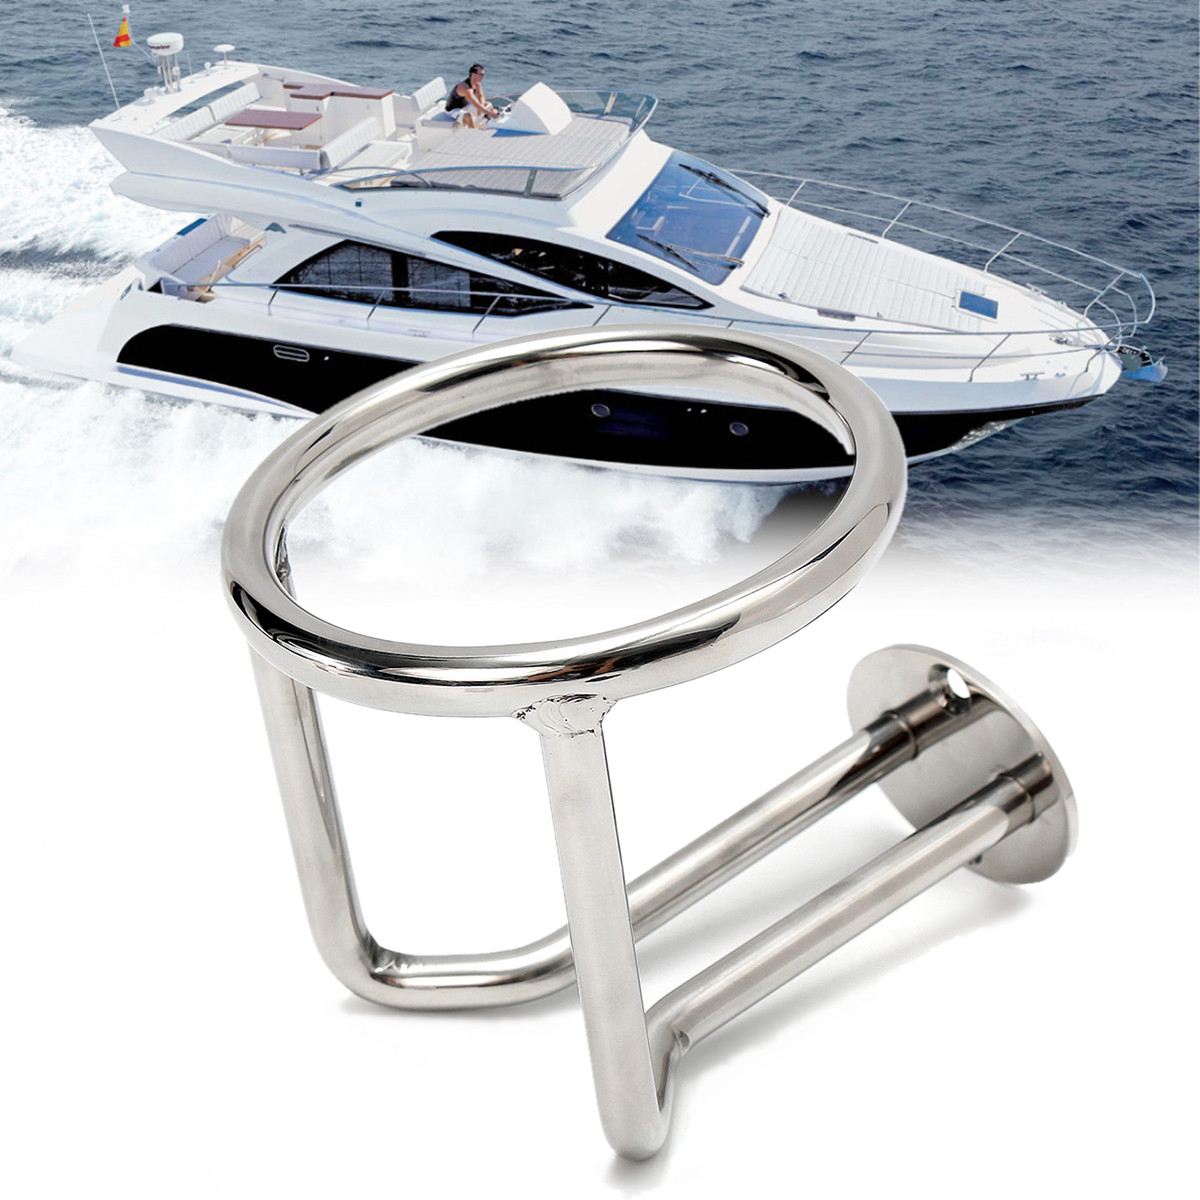 316 Stainless Steel Boat Ring Cup Drink Holder For Marine Yacht Truck RV